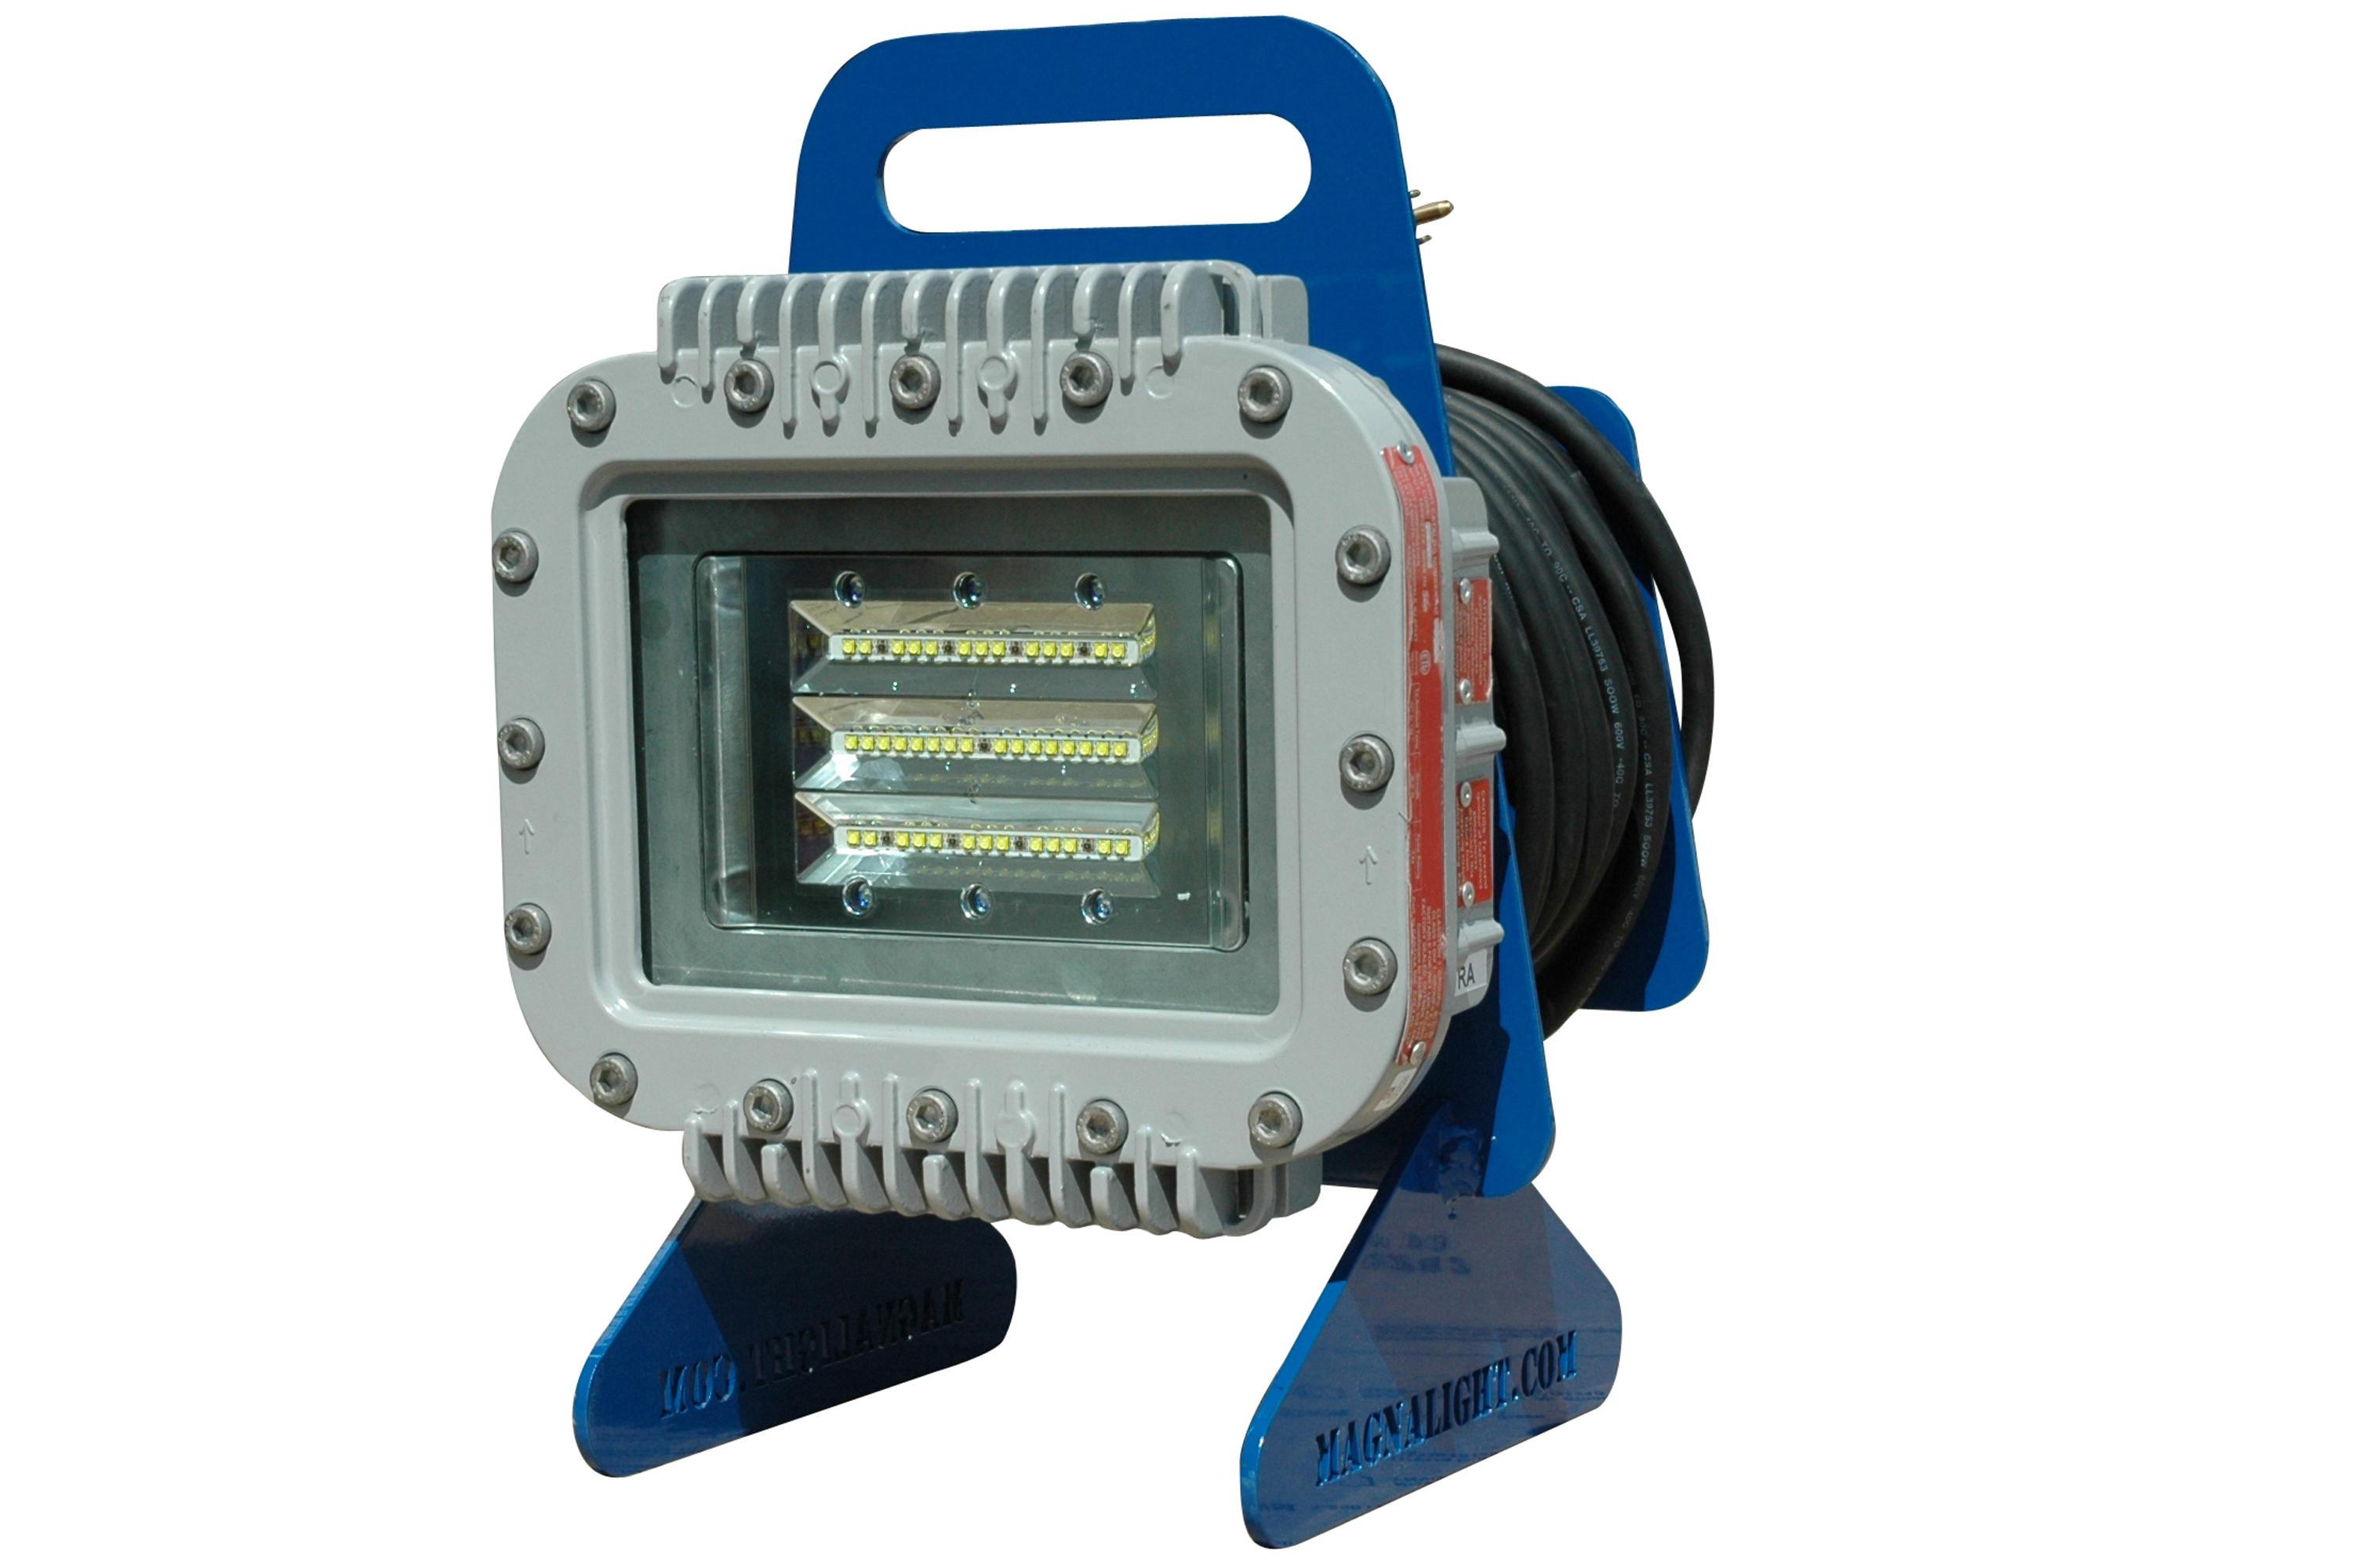 Portable Lights Larson Electronics Releases Portable Explosion Proof